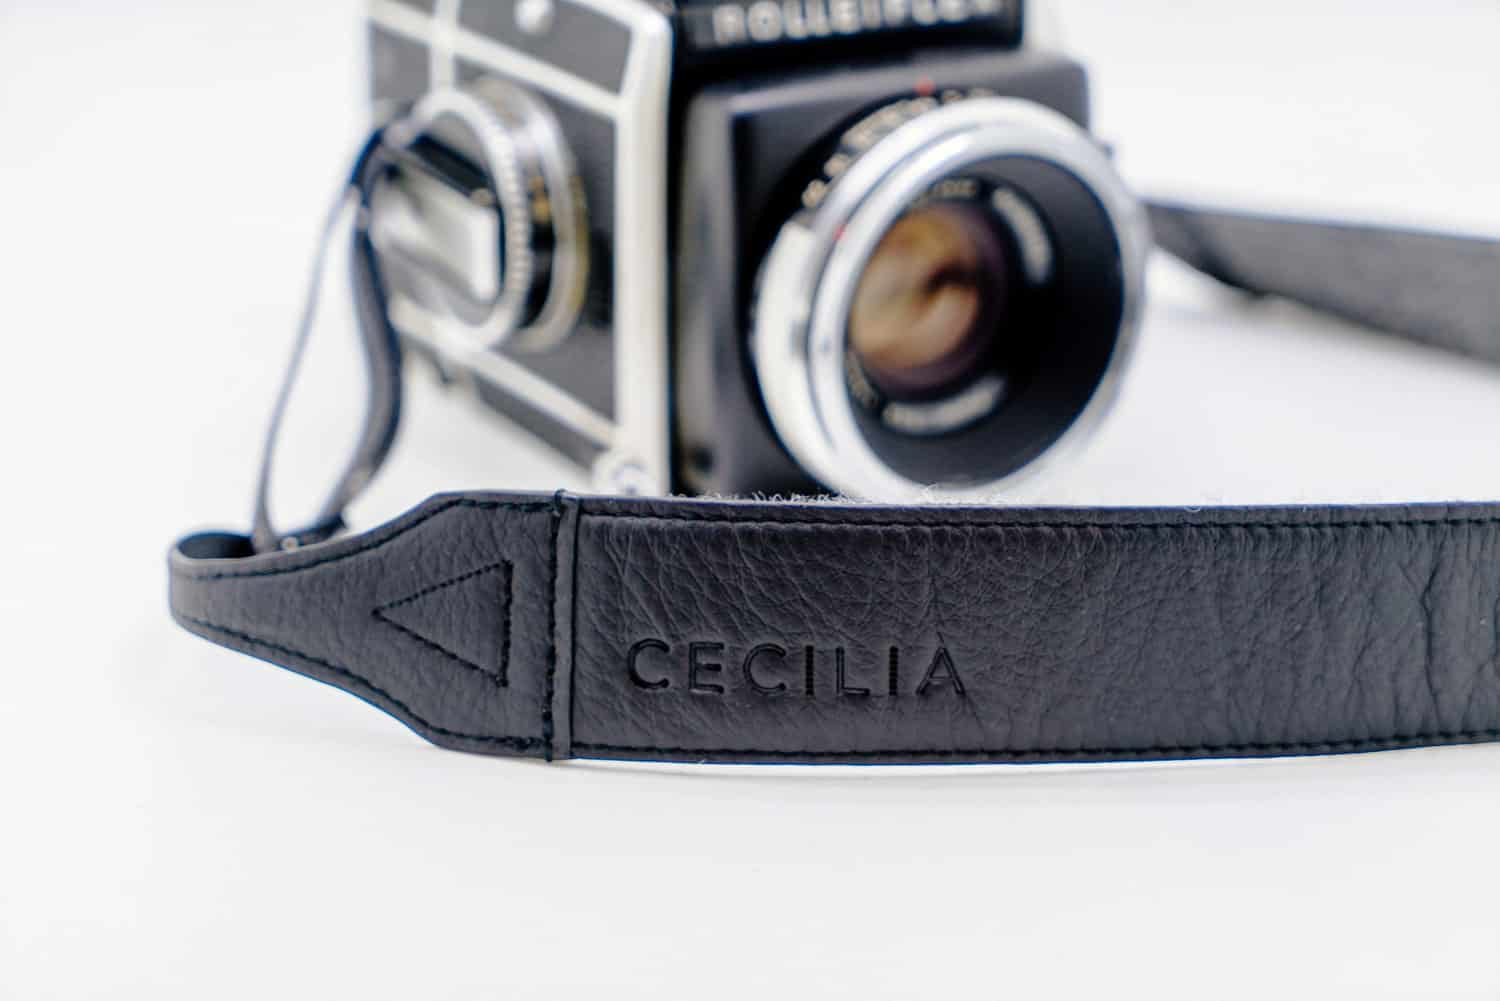 Gear Reviews: Cecilia Camera Straps